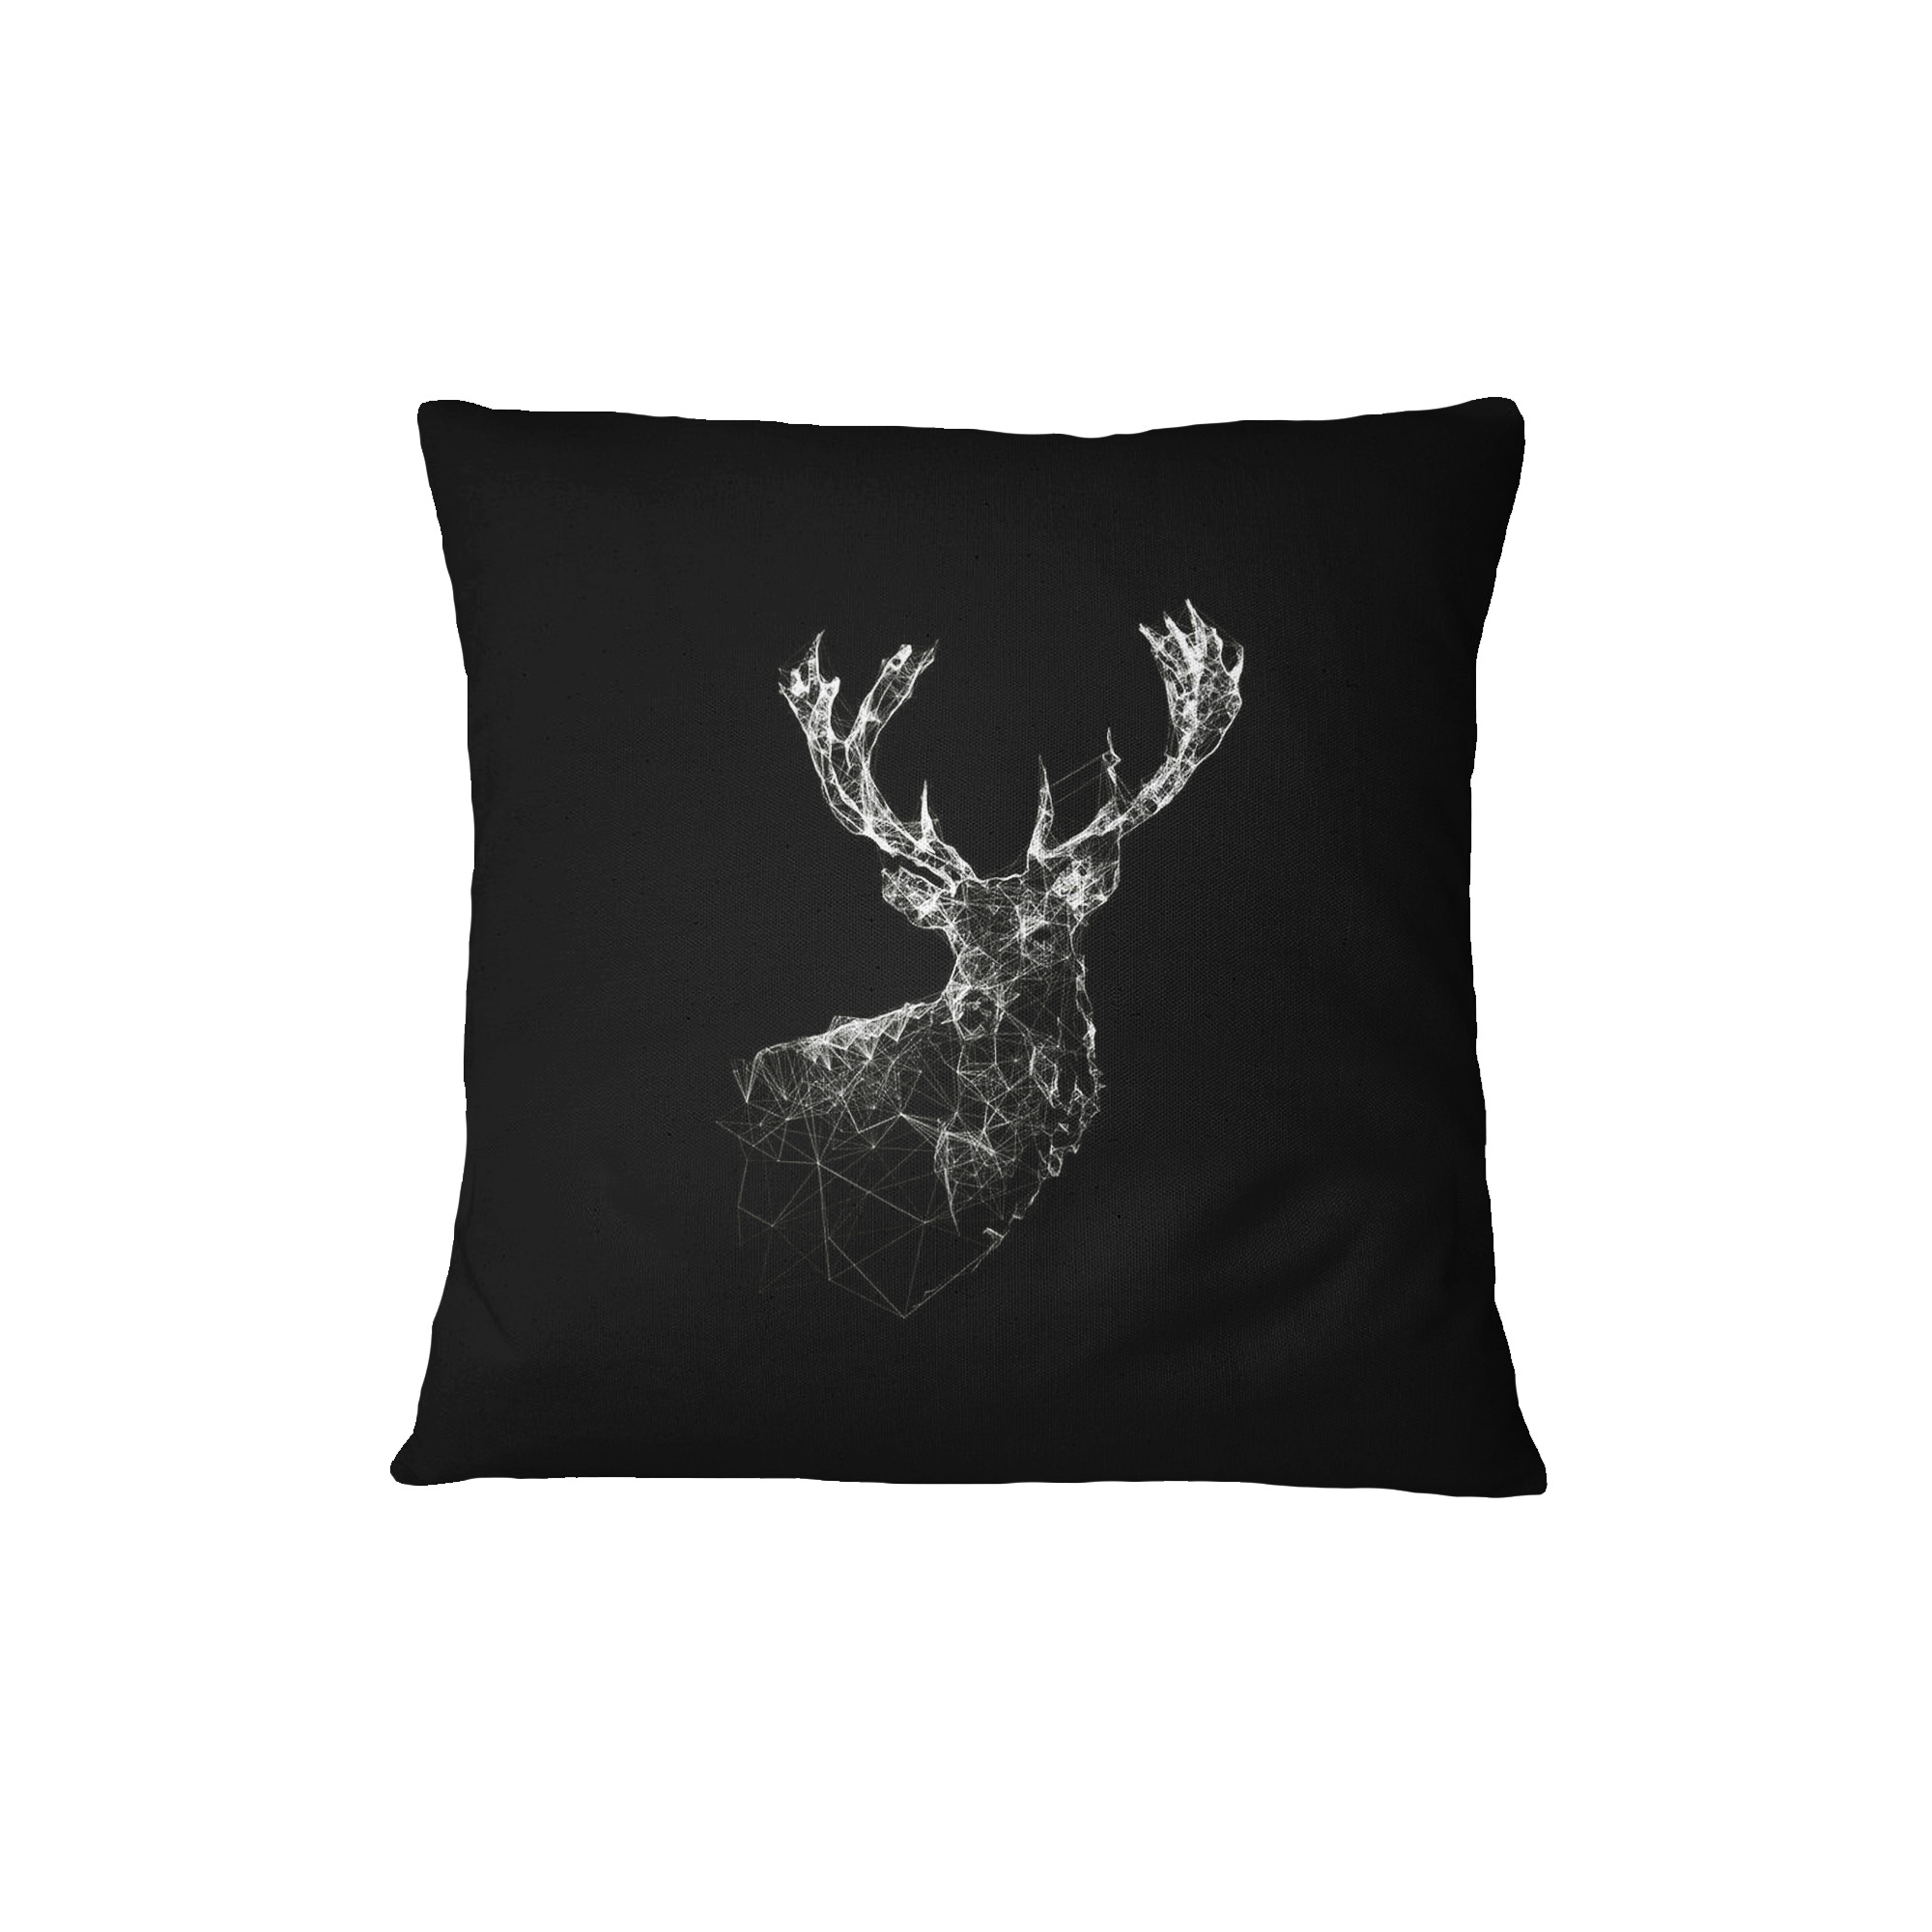 Cushions   Print on Demand Products   Products   My Print Partner